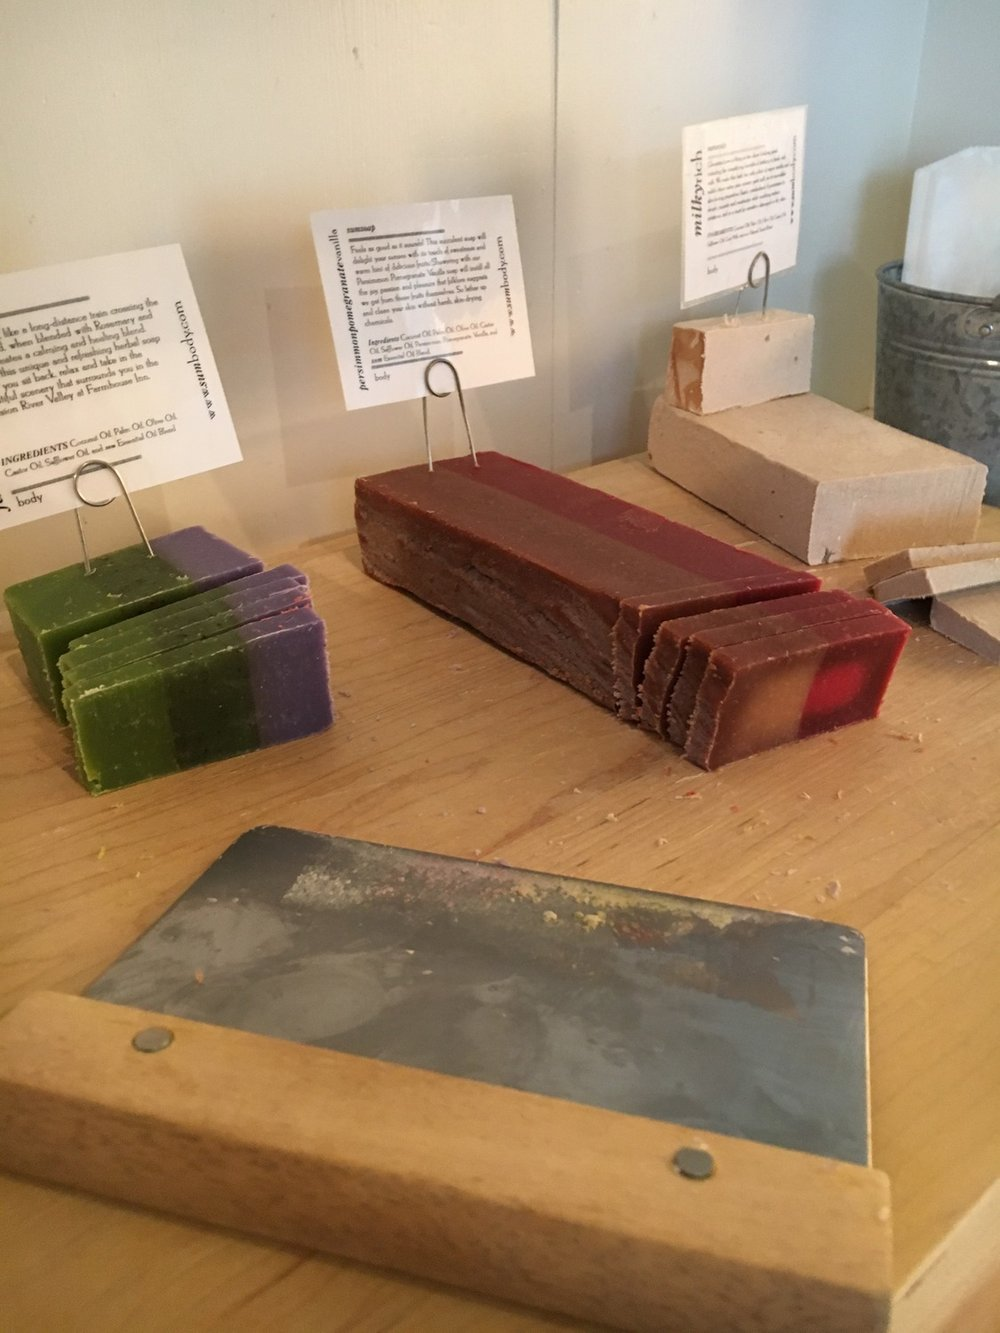 Homemade soaps at Farmhouse Inn